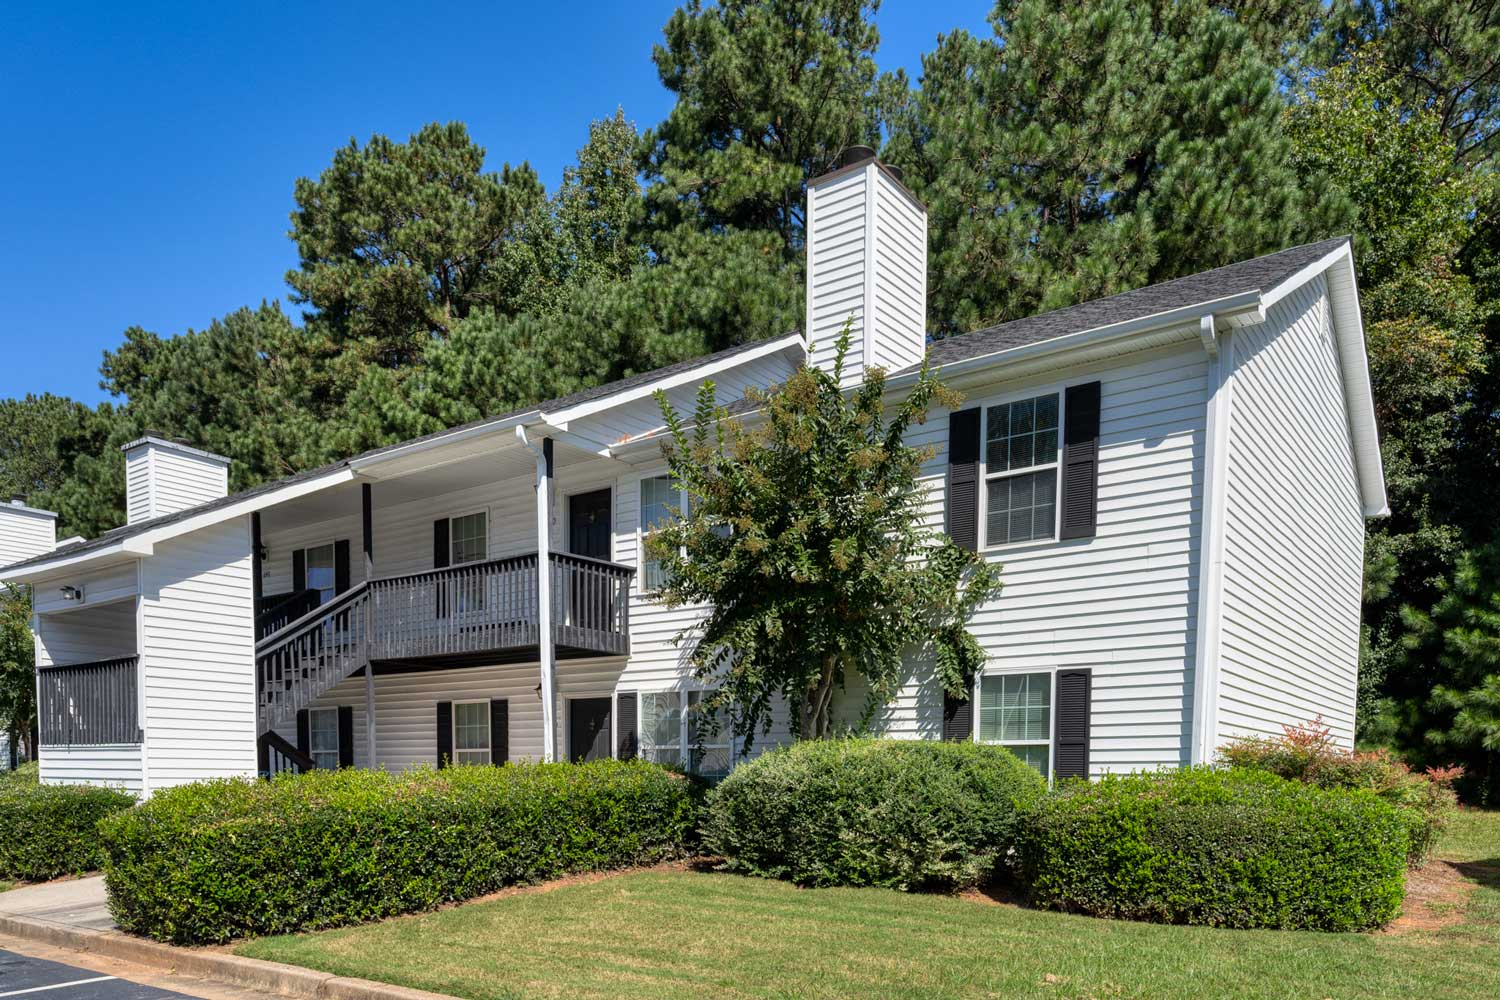 Property View at Tall Oaks Apartments and Villas in Conyers, GA